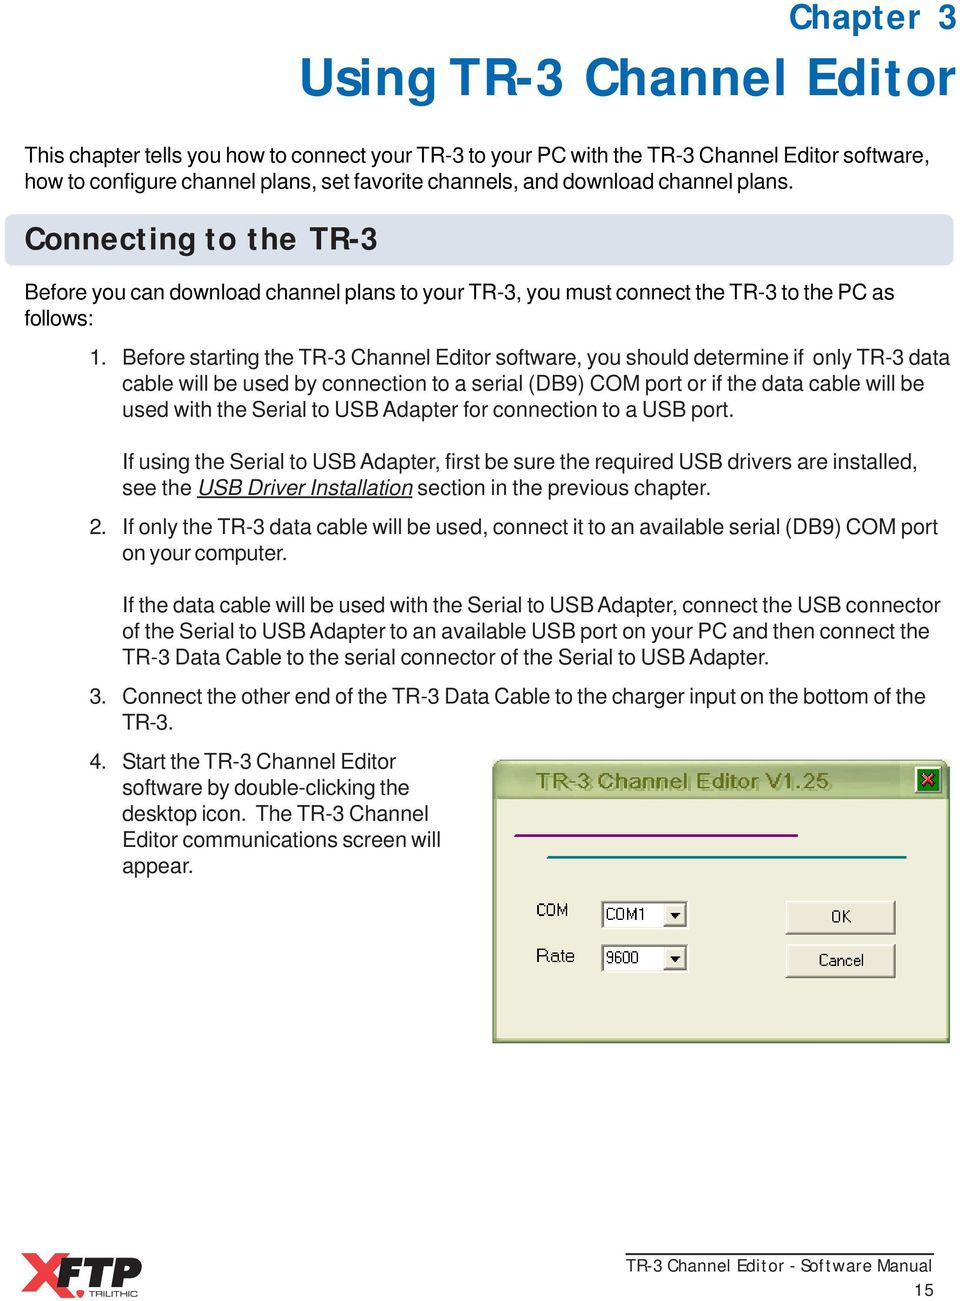 plans. Connecting to the TR-3 Before you can download channel plans to your TR-3, you must connect the TR-3 to the PC as follows: 1.